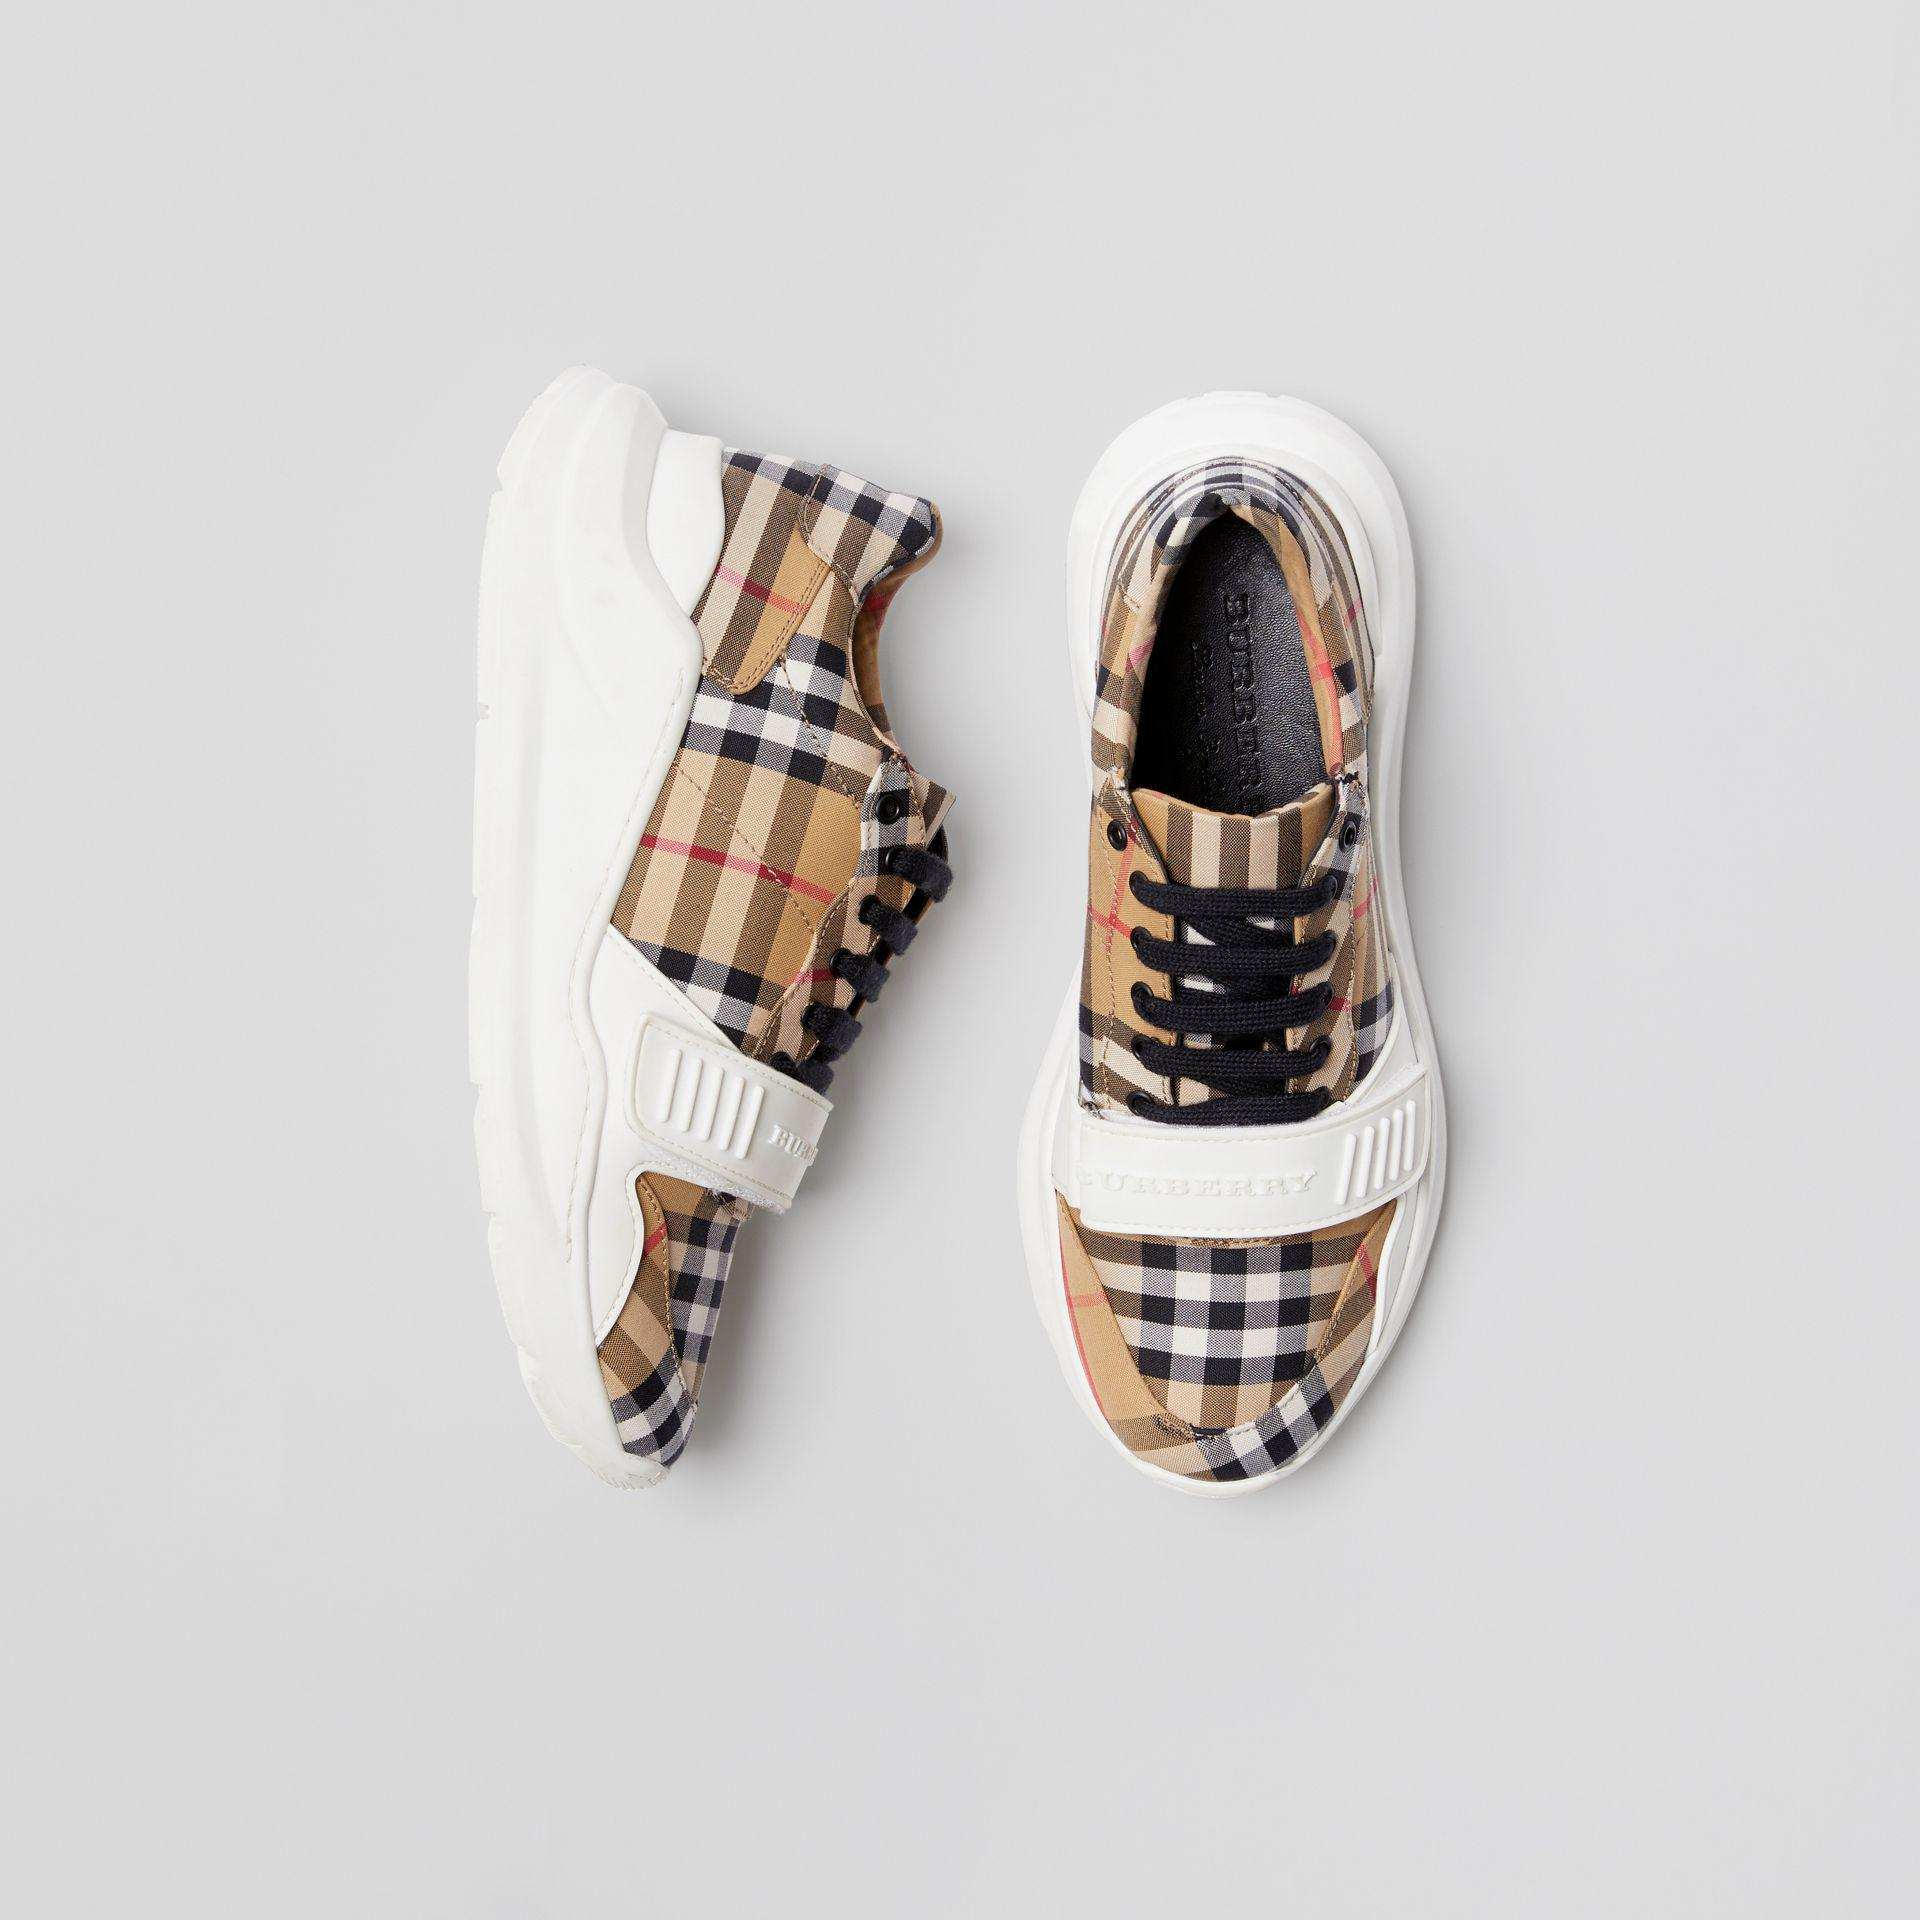 Burberry Cotton Regis Chunky Sneakers